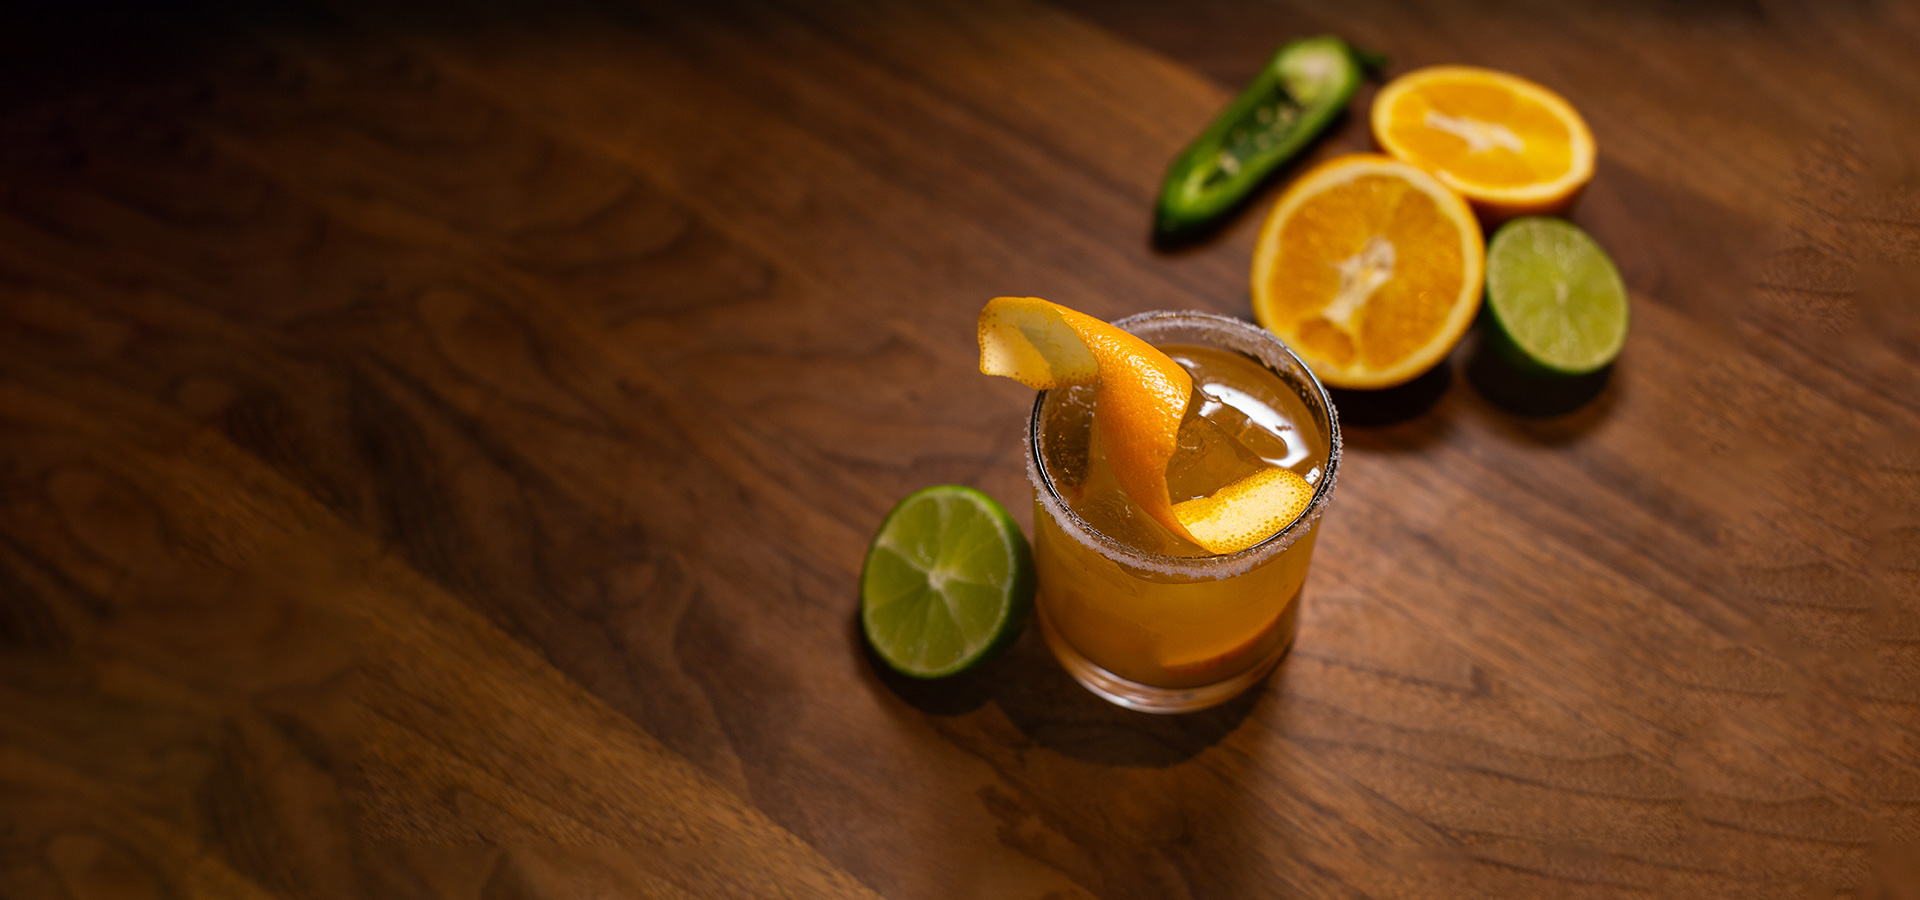 Reposado Tequila and Valencia orange slices muddled with chipotle, agave nectar, house-made sweet & sour and orange peel.